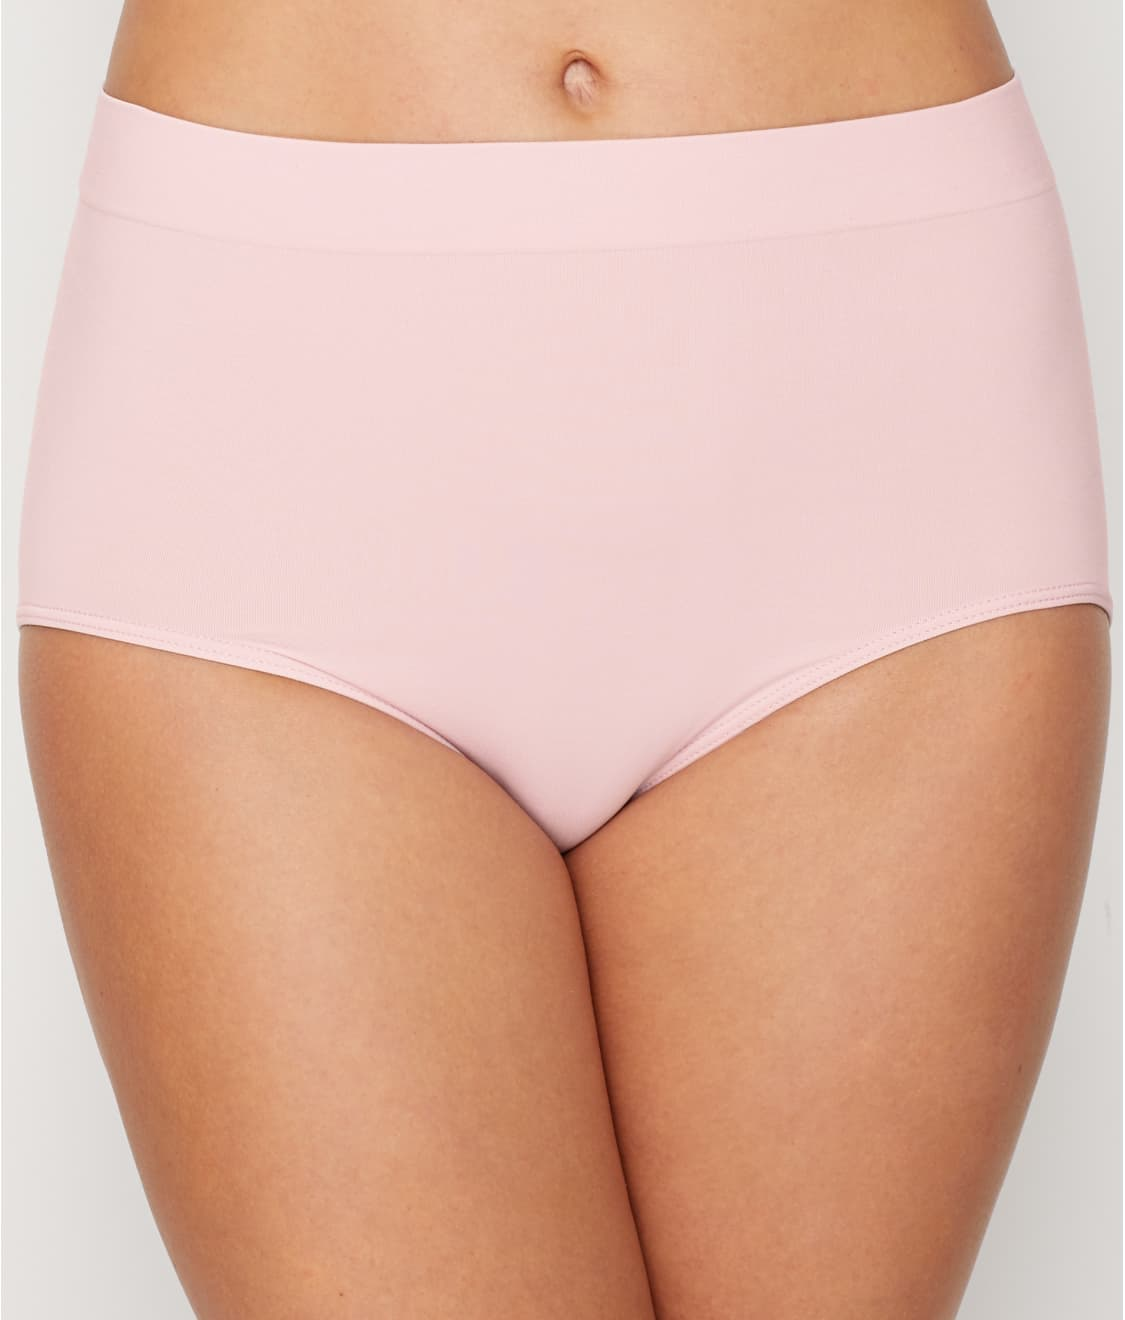 6a28e2bf354 See One Smooth U Brief in Hush Pink